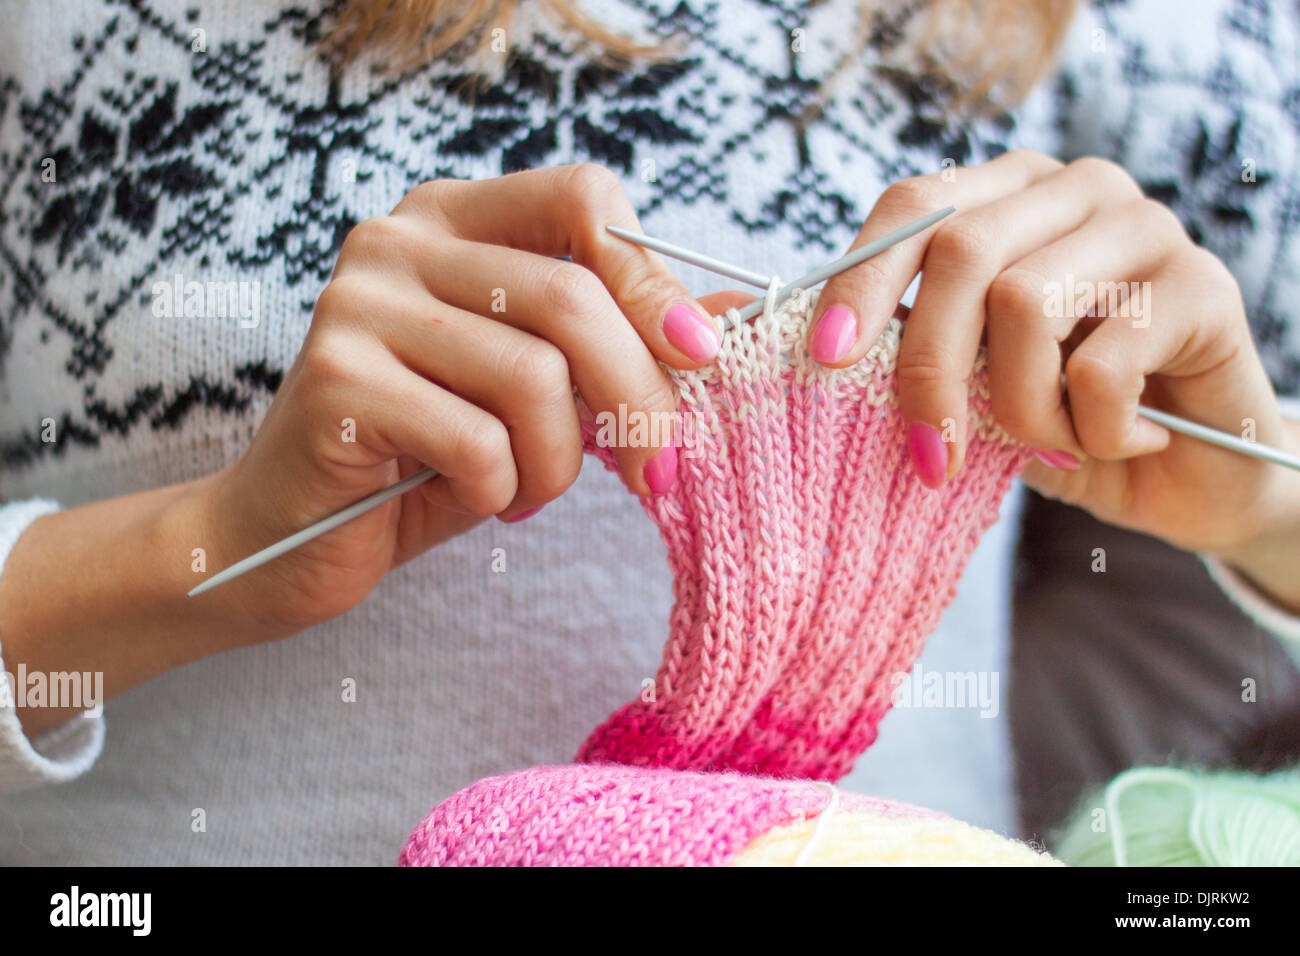 knitting hands 'knitting needles' girl woman closeup stitches crafts - Stock Image